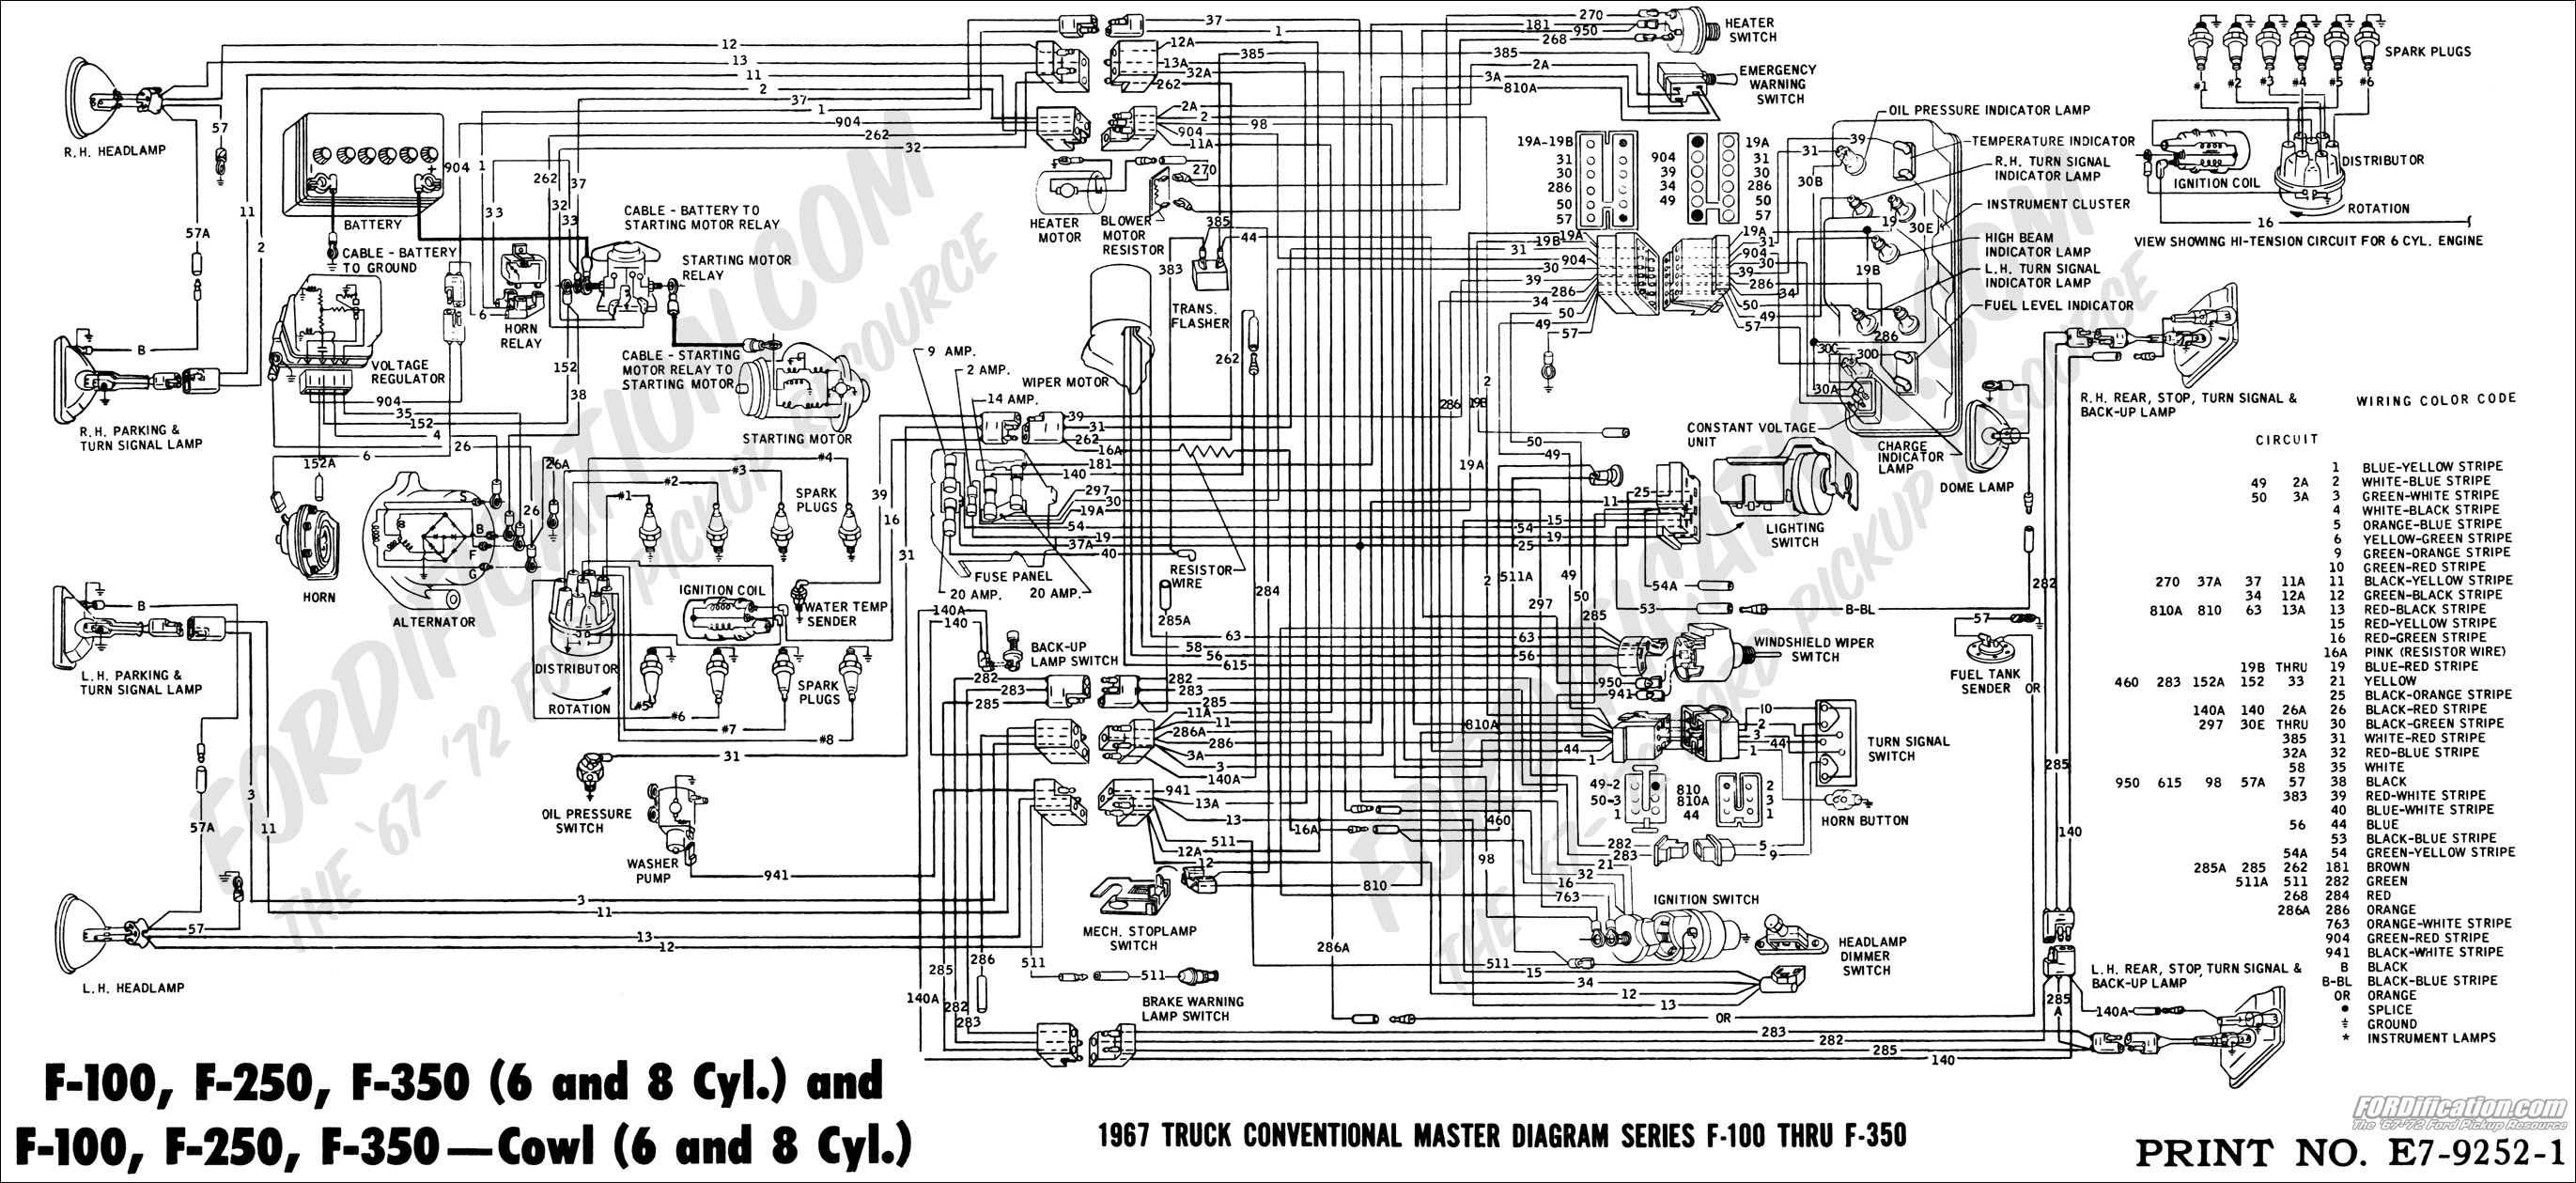 1982 toyota pickup alternator wiring diagram wiring diagram 1987 ford f800 wiring diagram wiring diagram data rh 6 3 19 reisen fuer meister de alternator charging circuit diagram toyota alternator problems